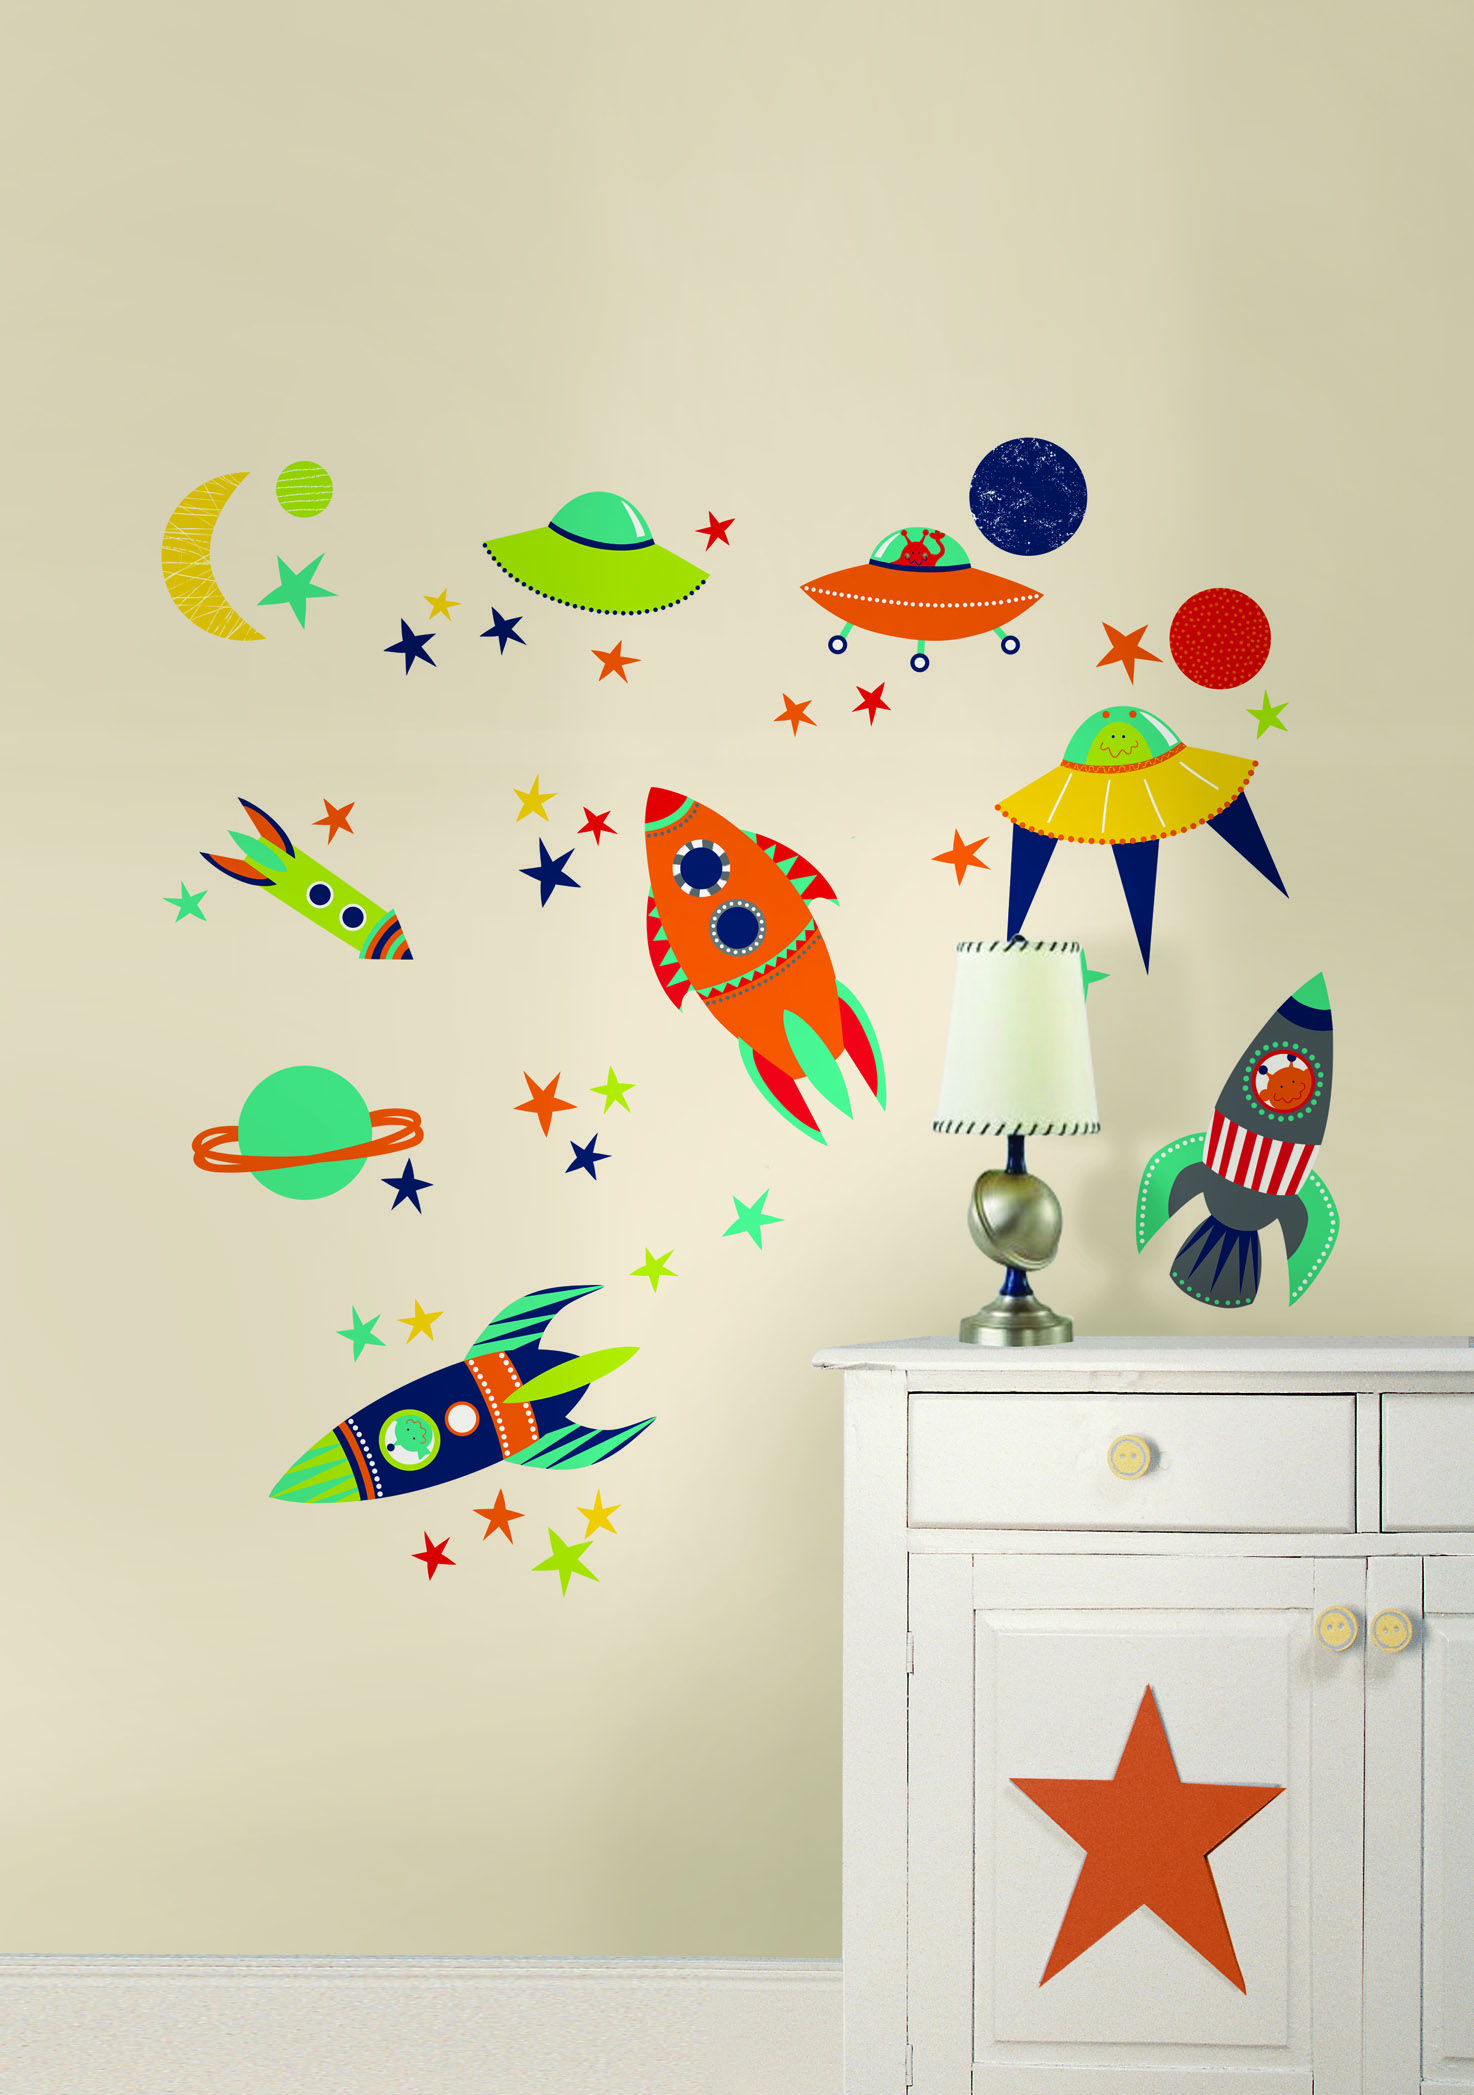 Wallpops Blast Off Wall Art Kit E Theme Decals With Ufos Rockets Planets The Moon And Stars Great For Kids Decor Especially Por A